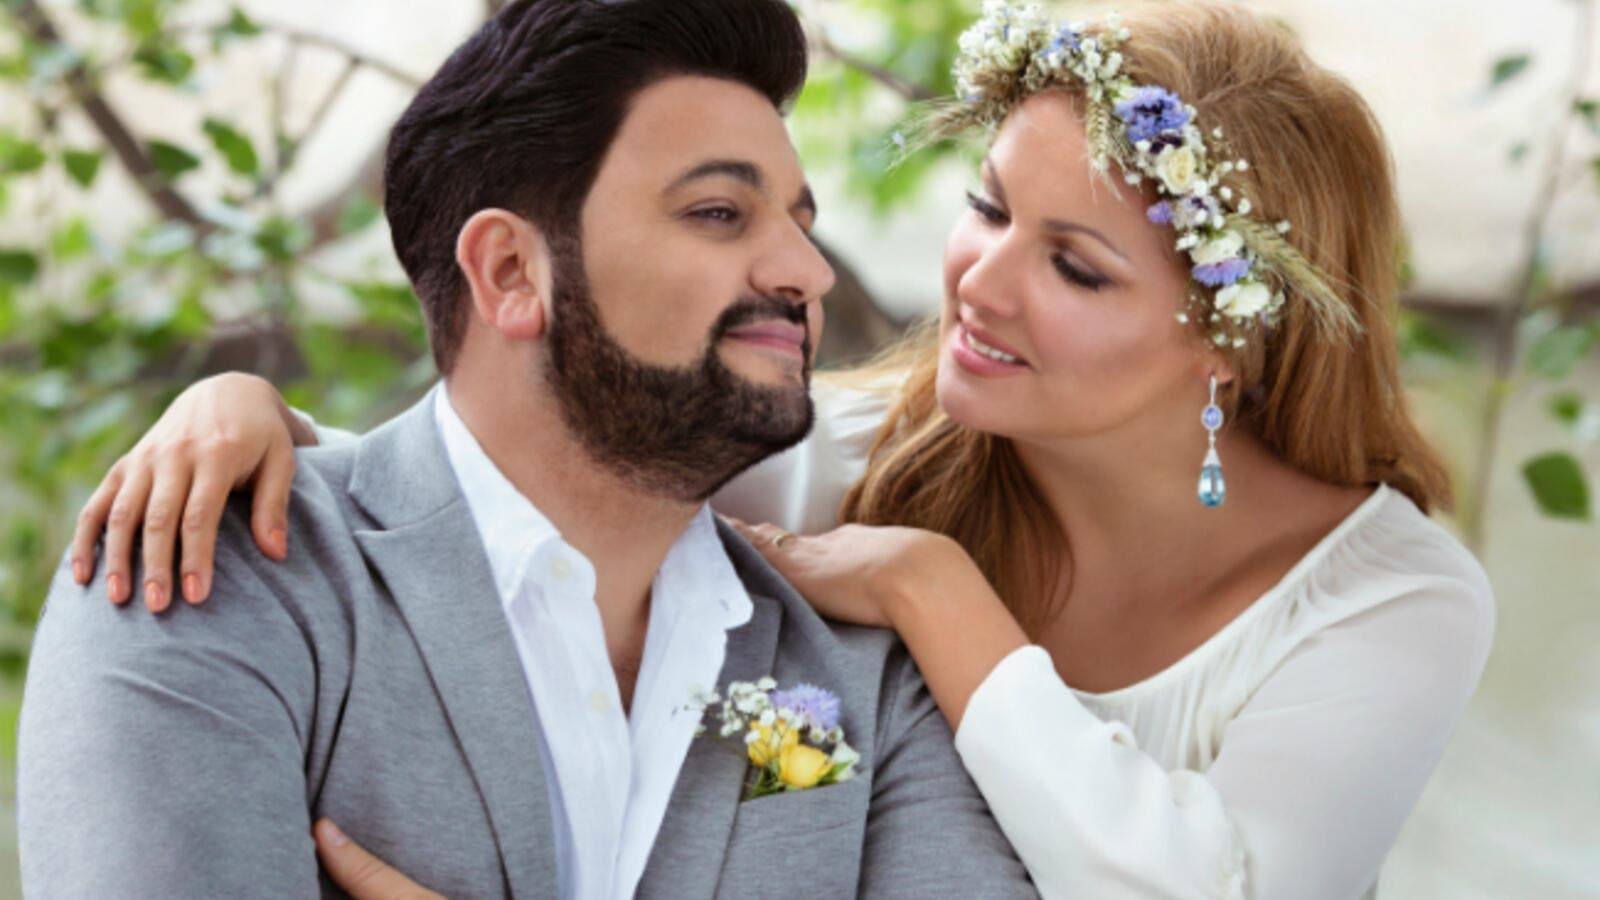 Anna Netrebko and Yusif Eyvazov make a breathtaking partnership both on stage and in life.